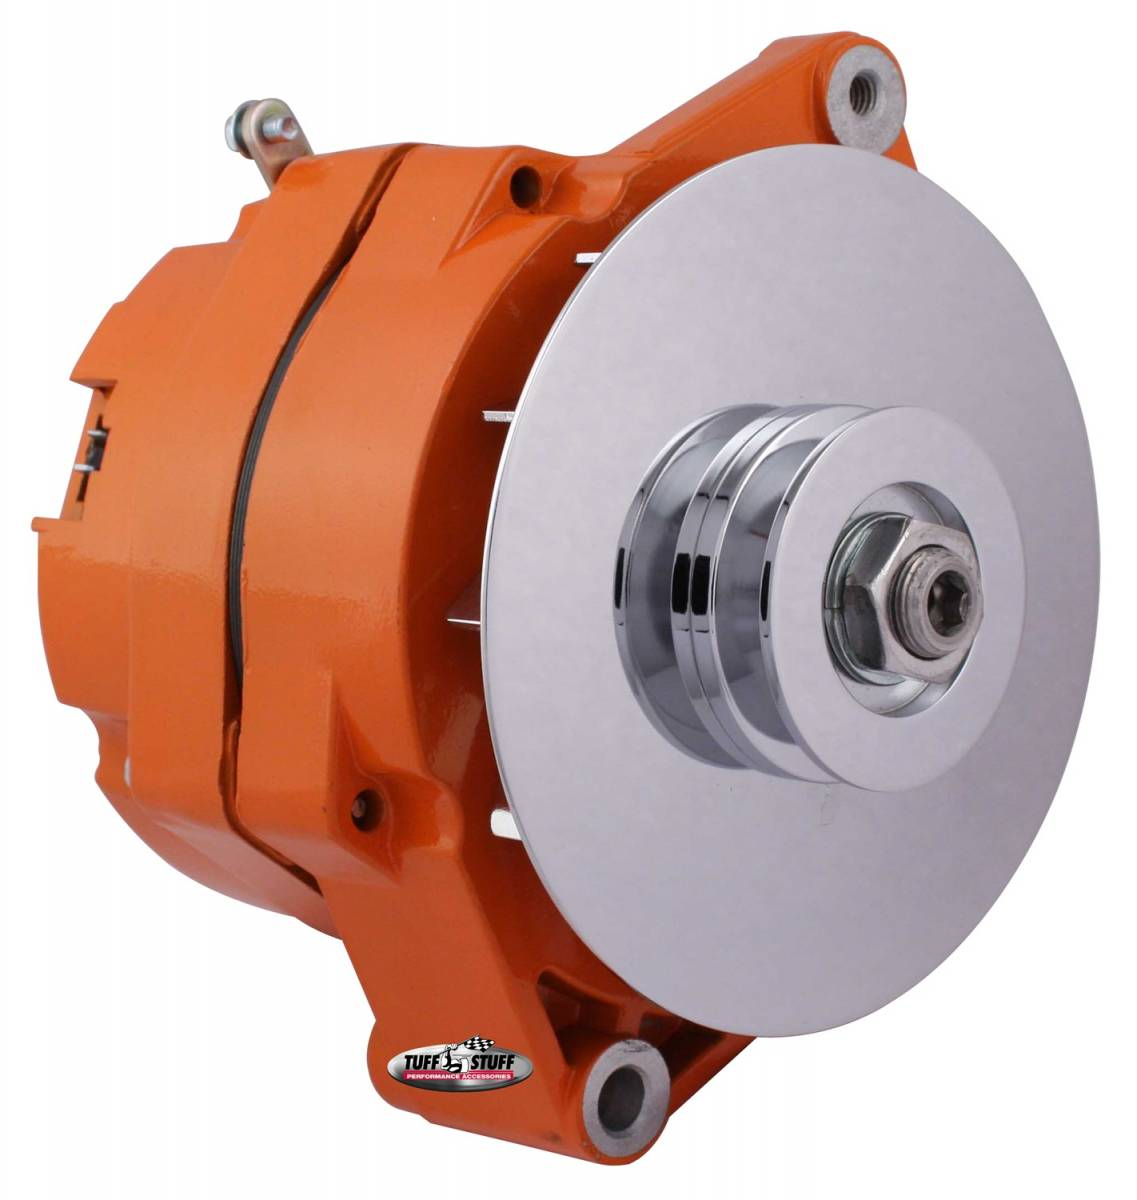 Tuff Stuff Performance - Alternator 80 AMP OEM Wire 10si Case V Groove Pulley External Regulator Orange Powdercoat w/Chrome Accents Must Be Used With An External Solid State Voltage Regulator 7102NFORANGE